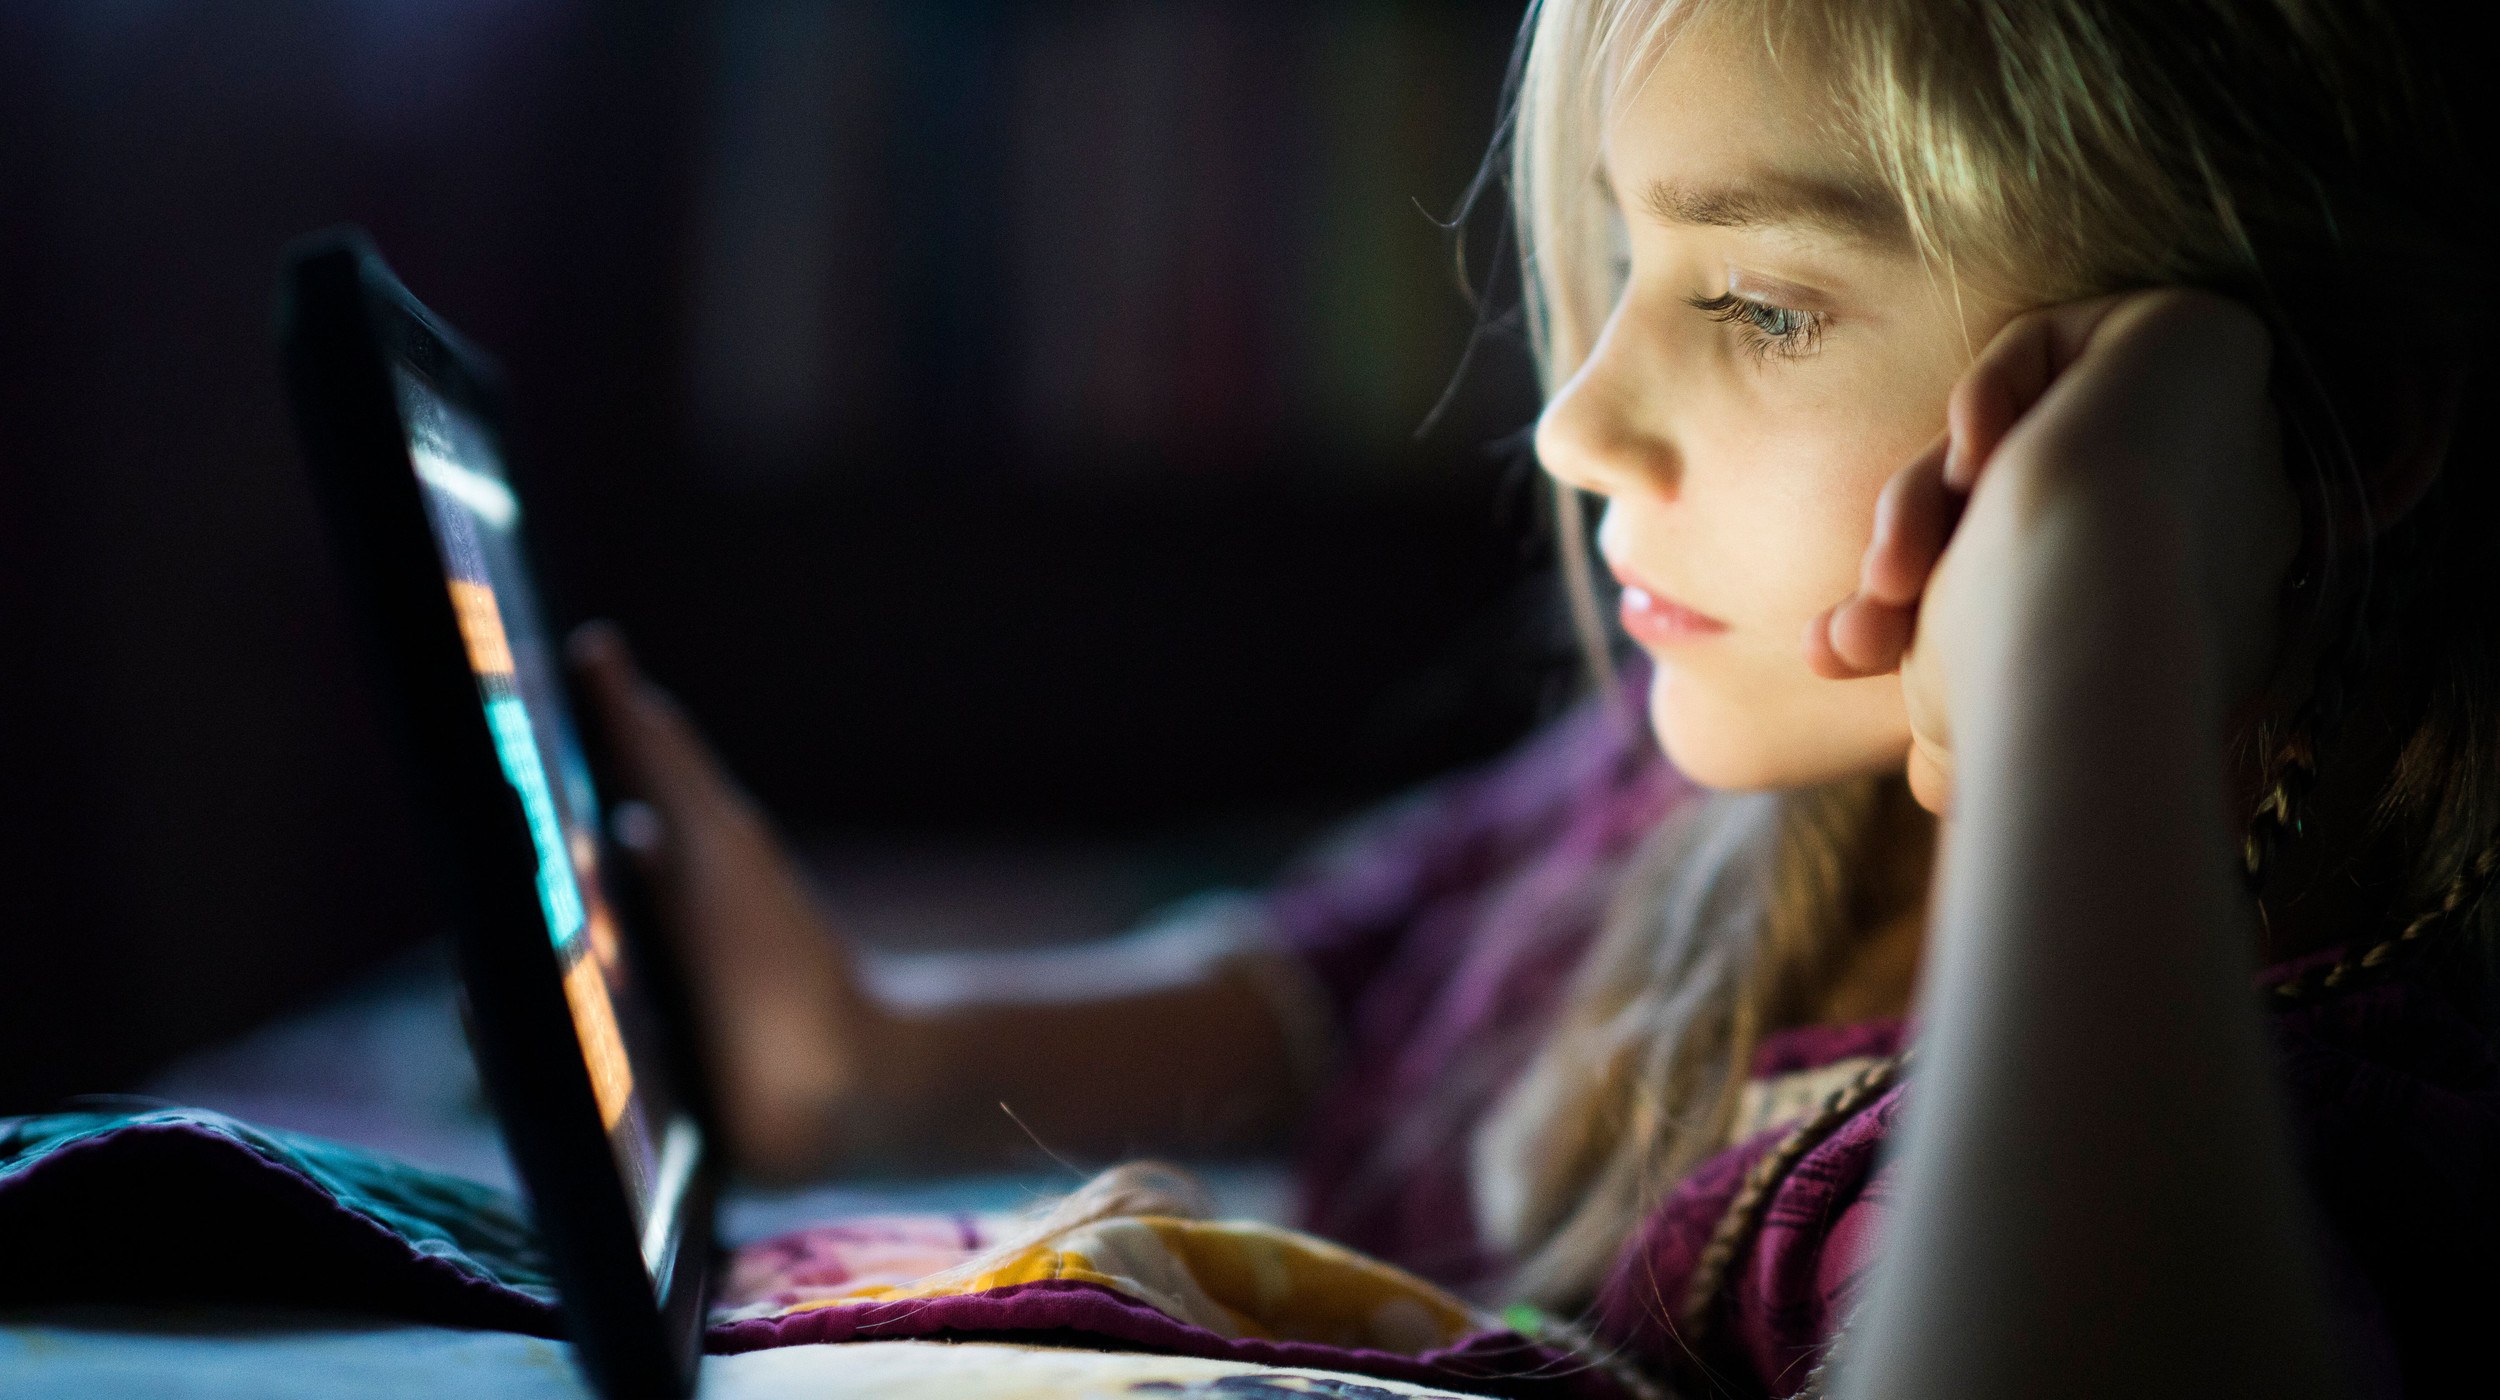 Online 24/7, but totally disconnected — new findings on teen isolation during COVID-19